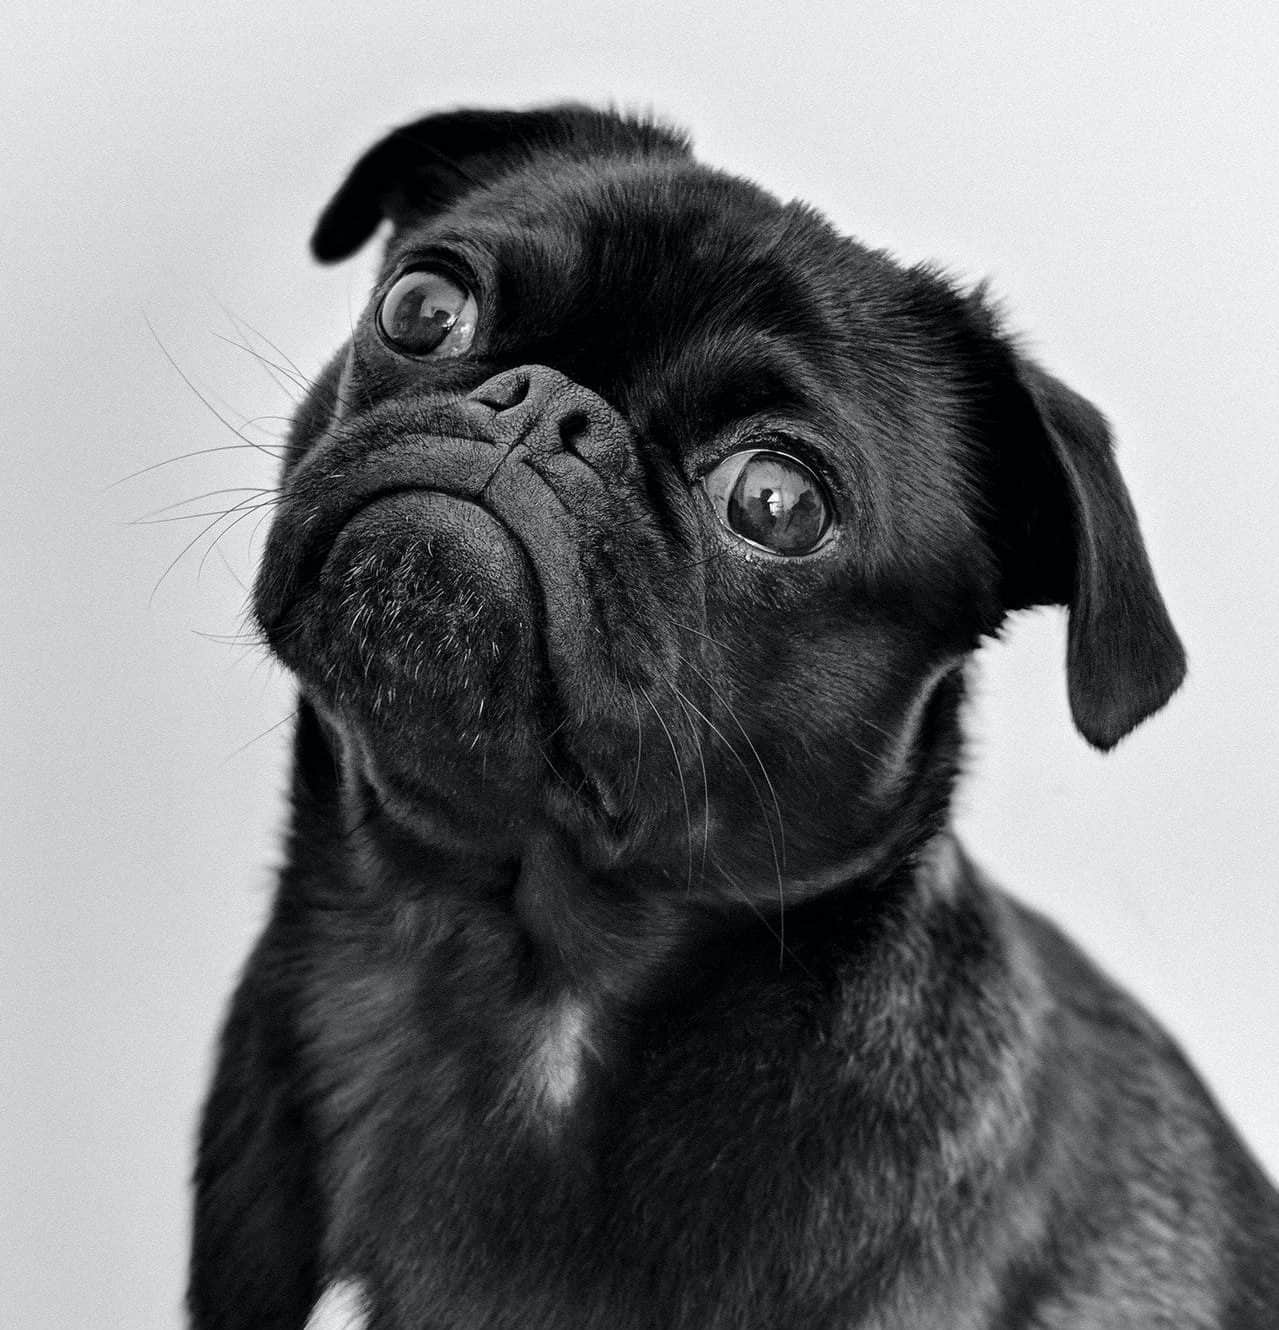 pug puppy looking sad with puppy eyes